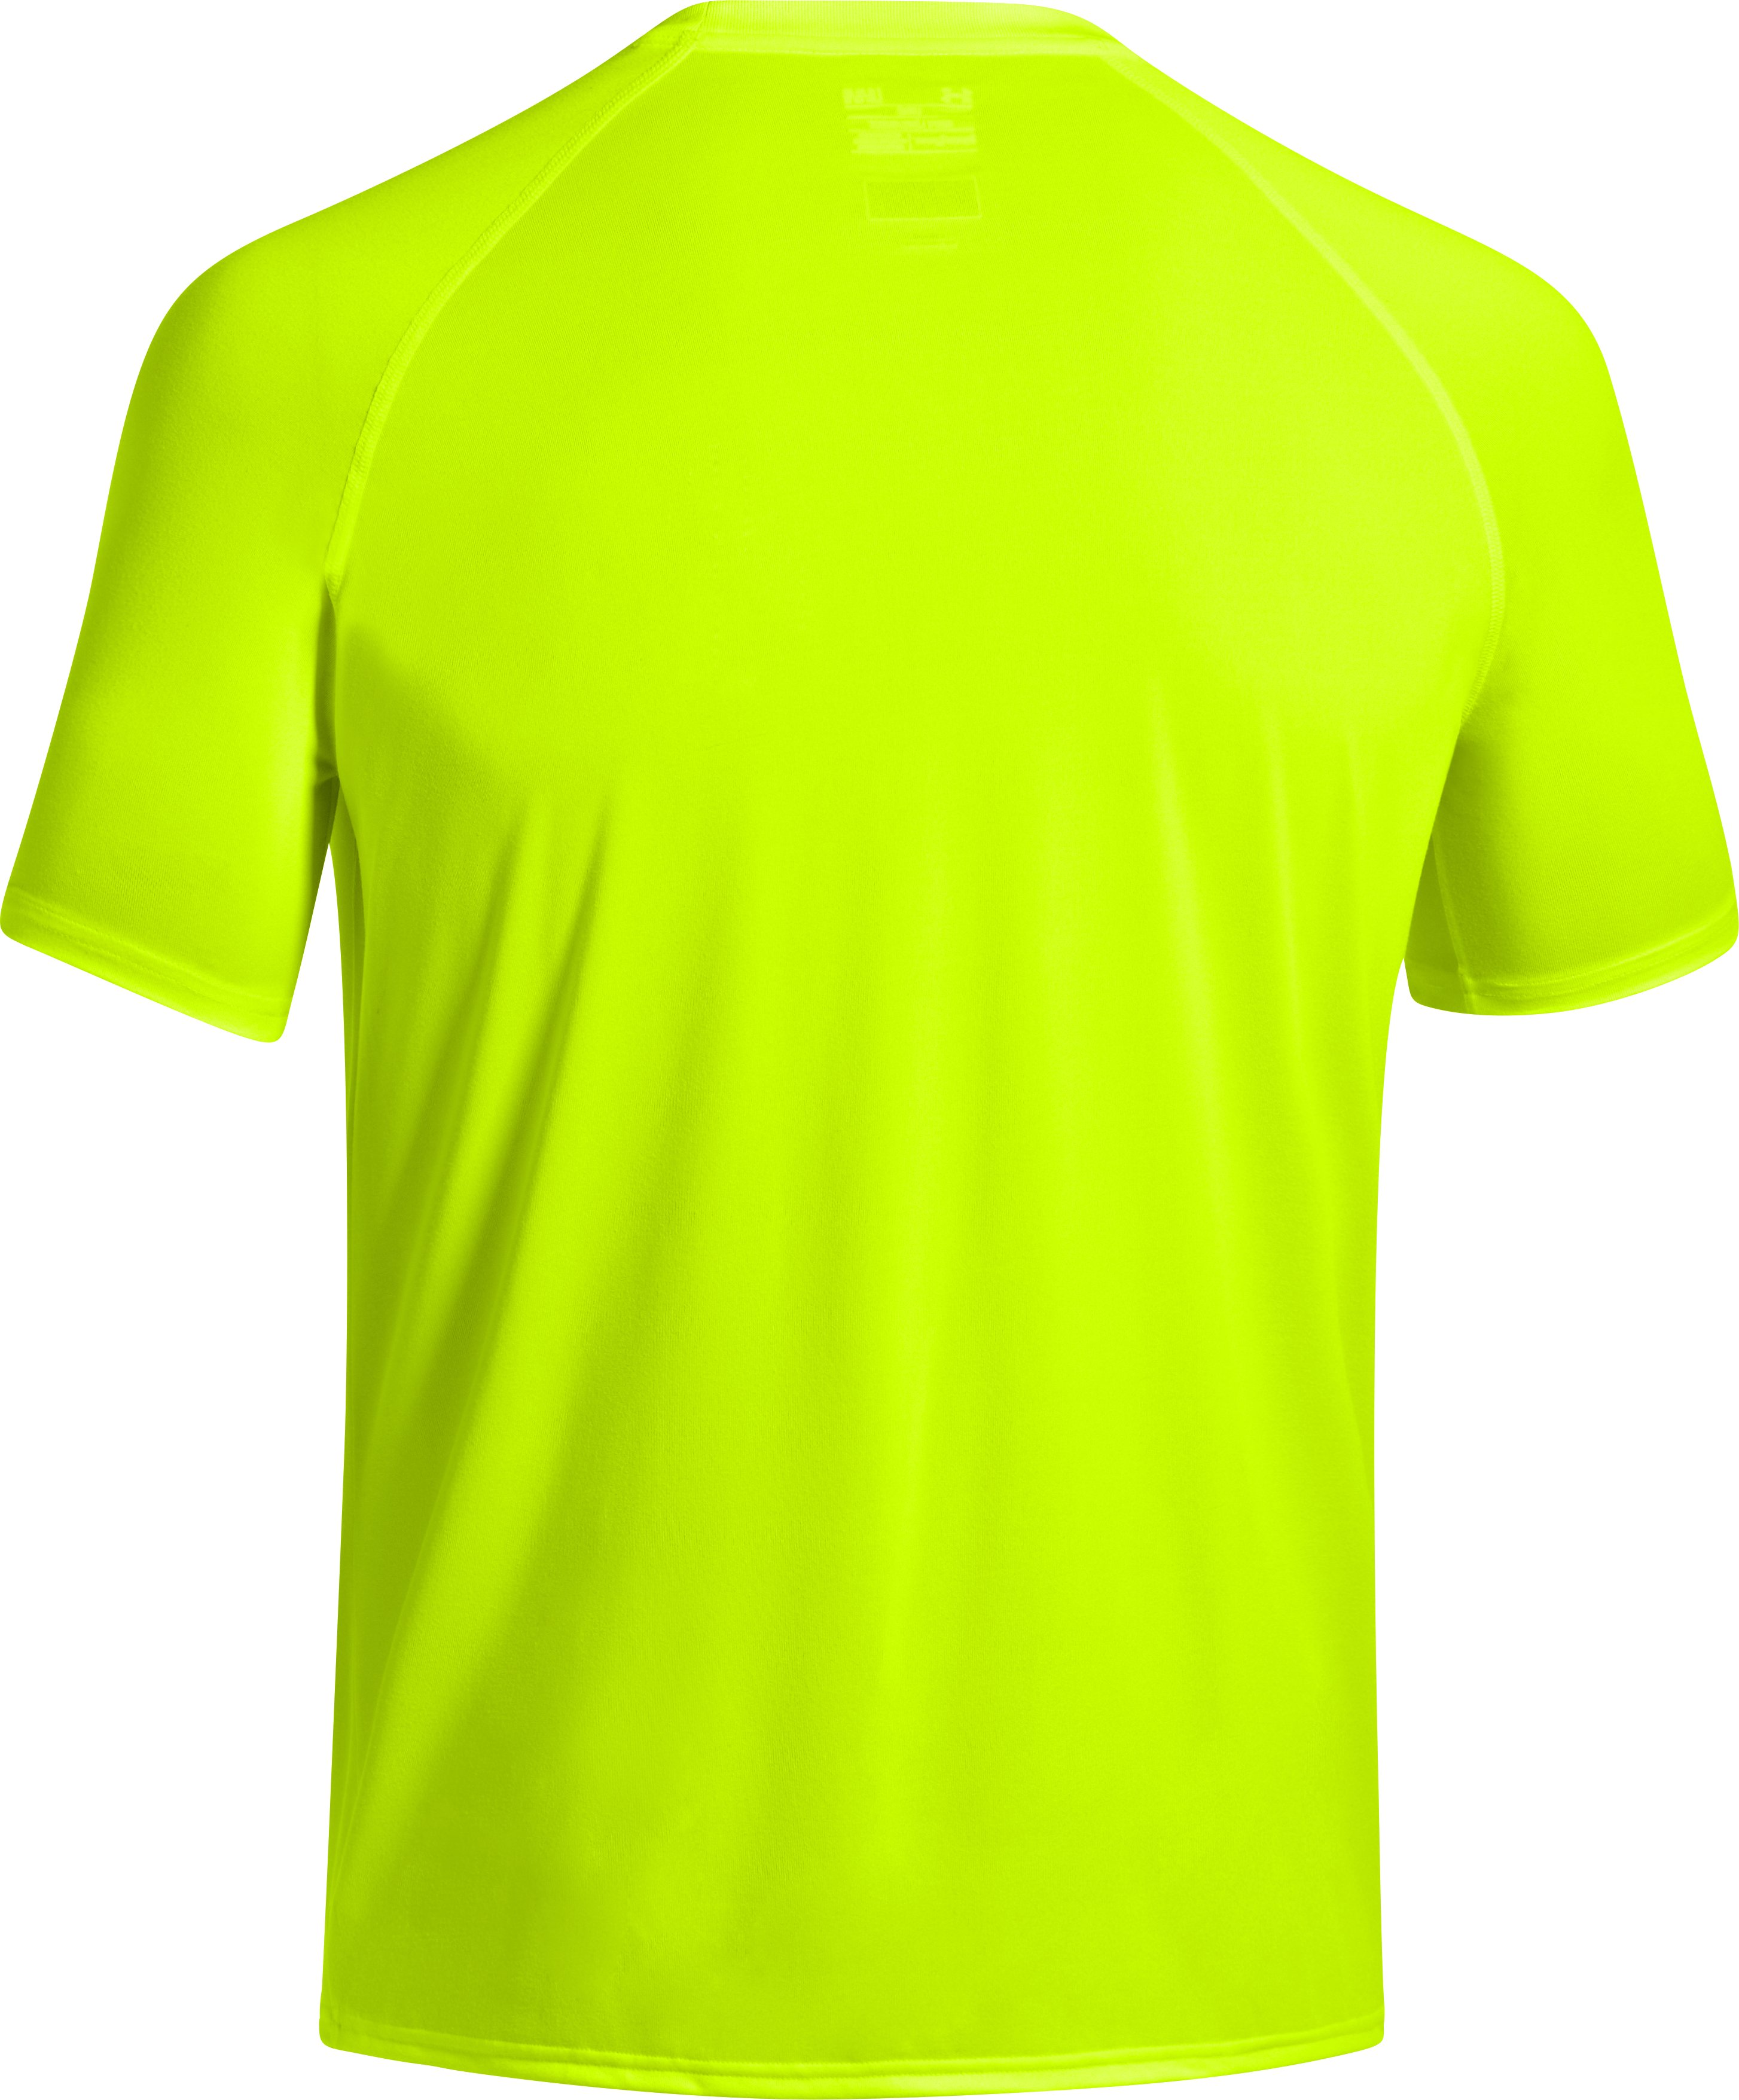 Men's Under Armour® Alter Ego Camo Captain America T-Shirt, High-Vis Yellow, undefined